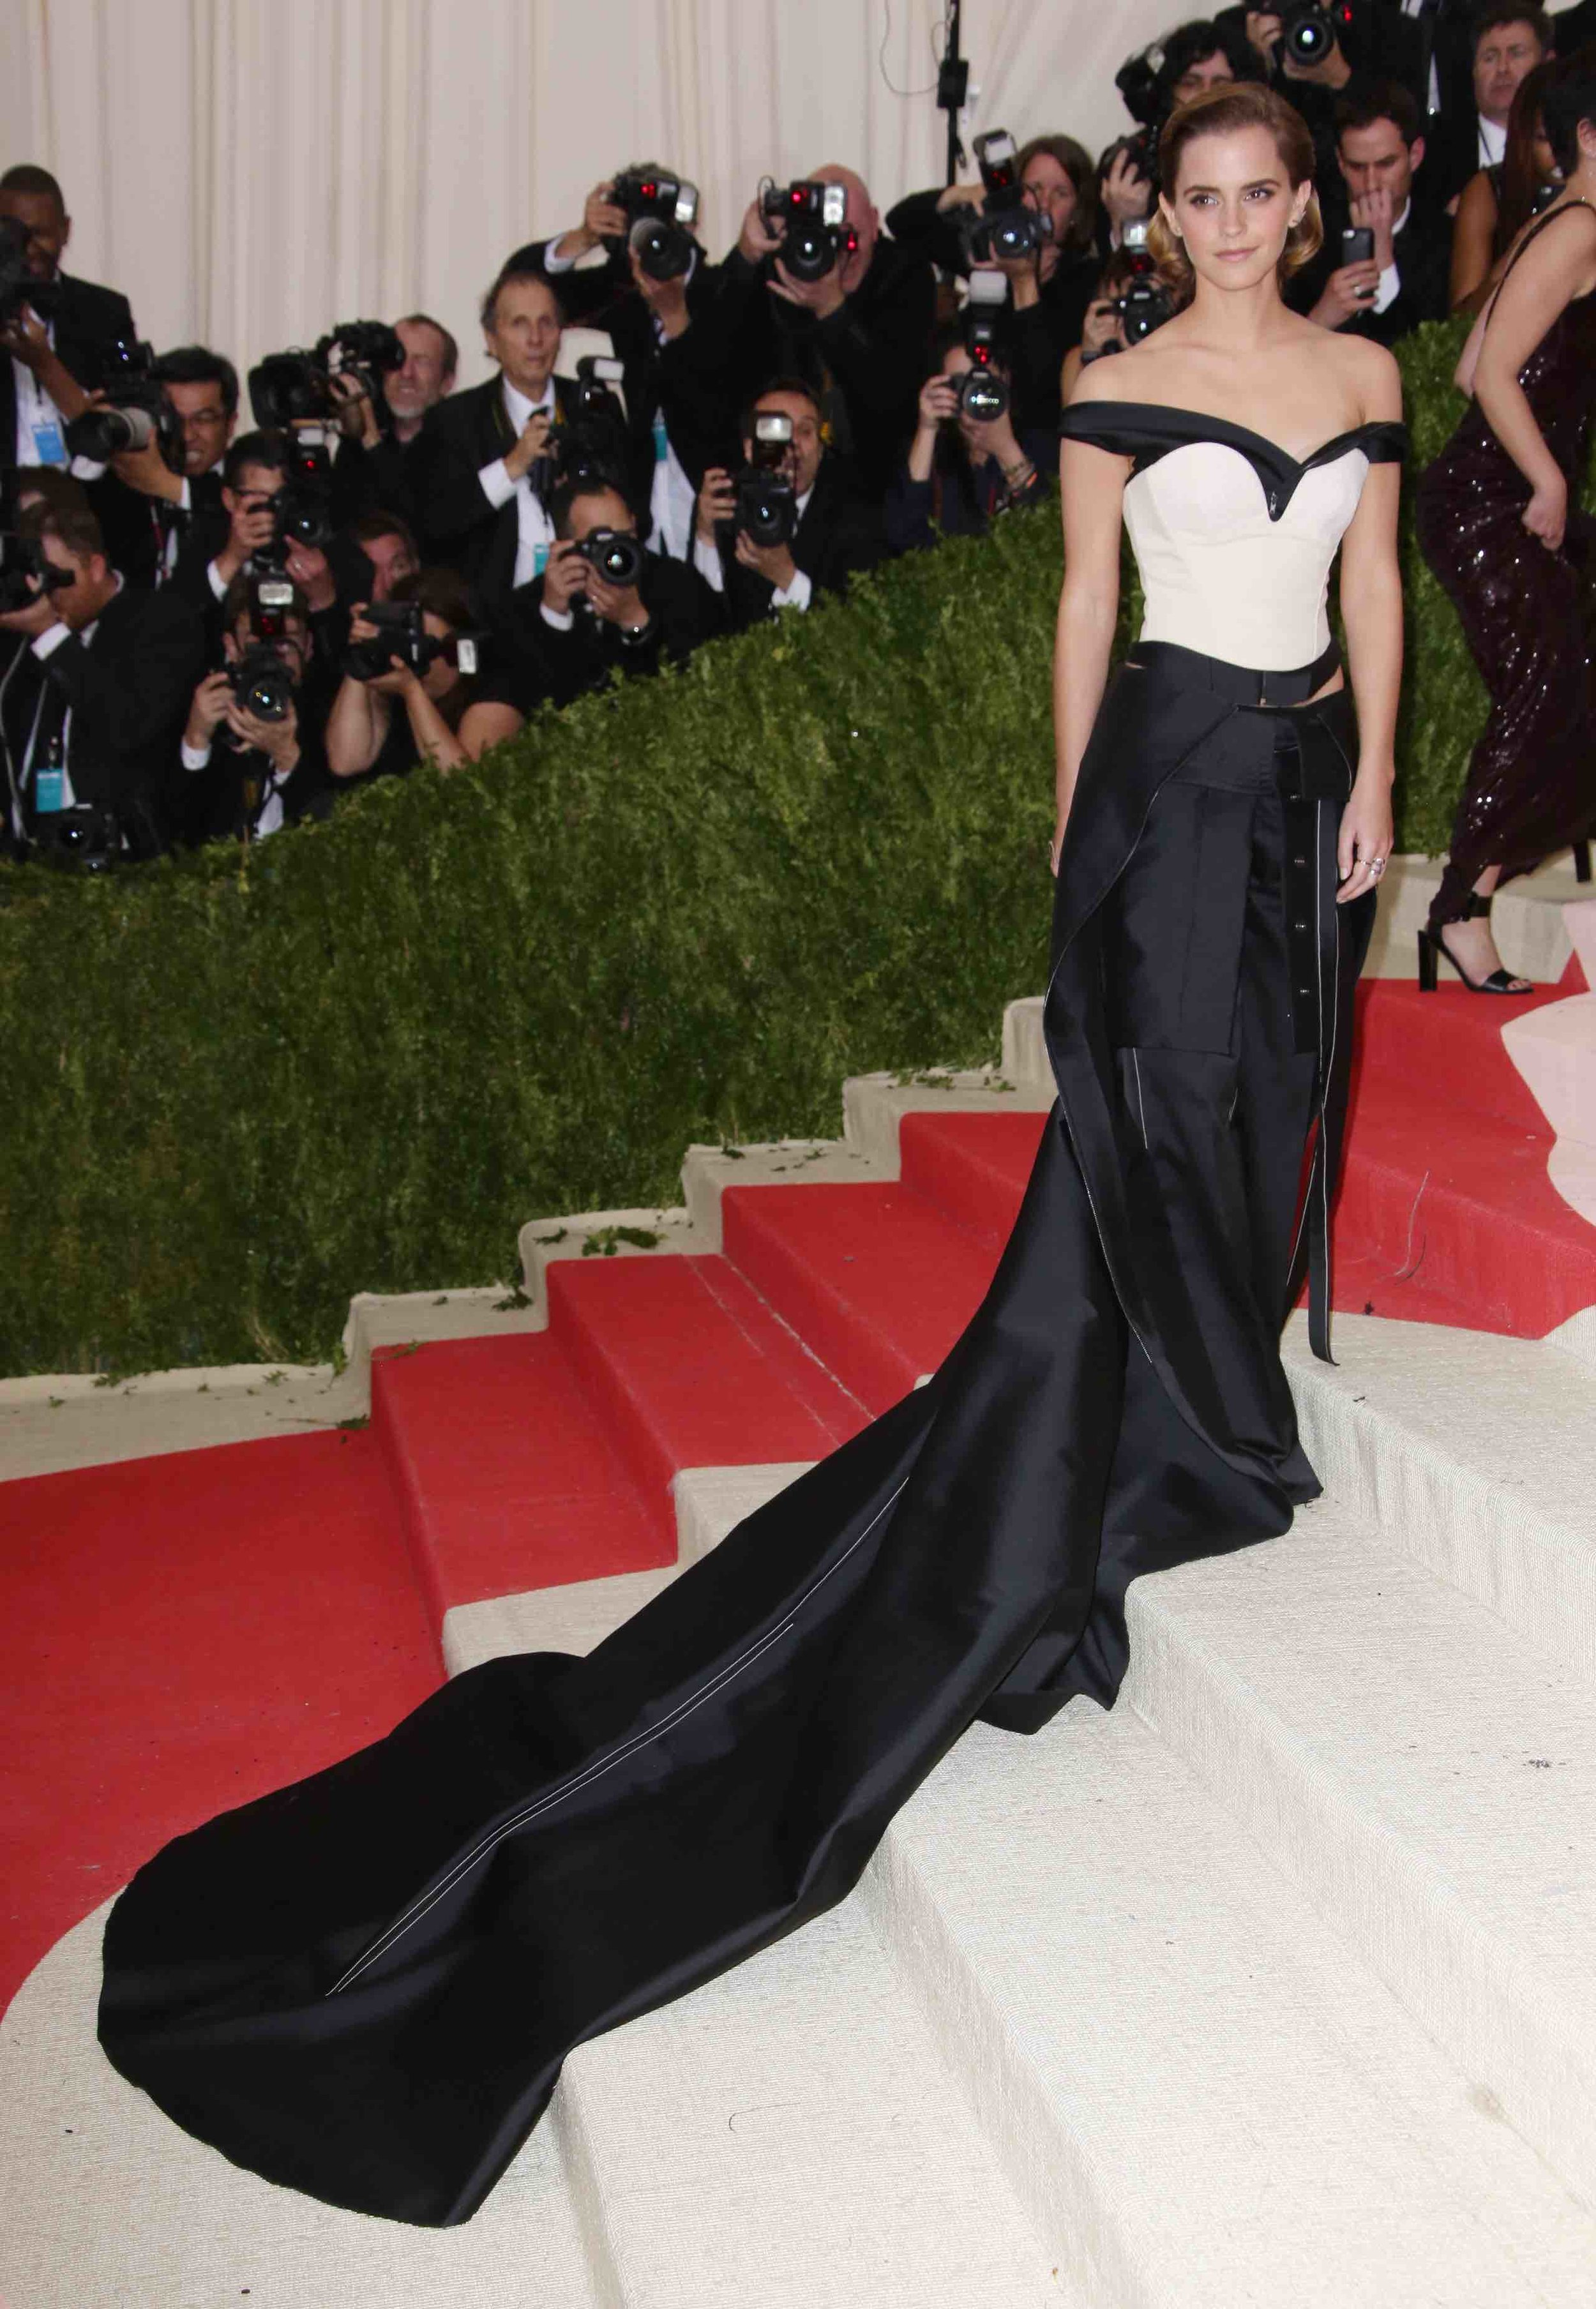 Calvin Klein Green Carpet Challenge dress worn by Emma Watson to the MET Gala 2016. Photo by Dimitrios Kambouris/Getty Images